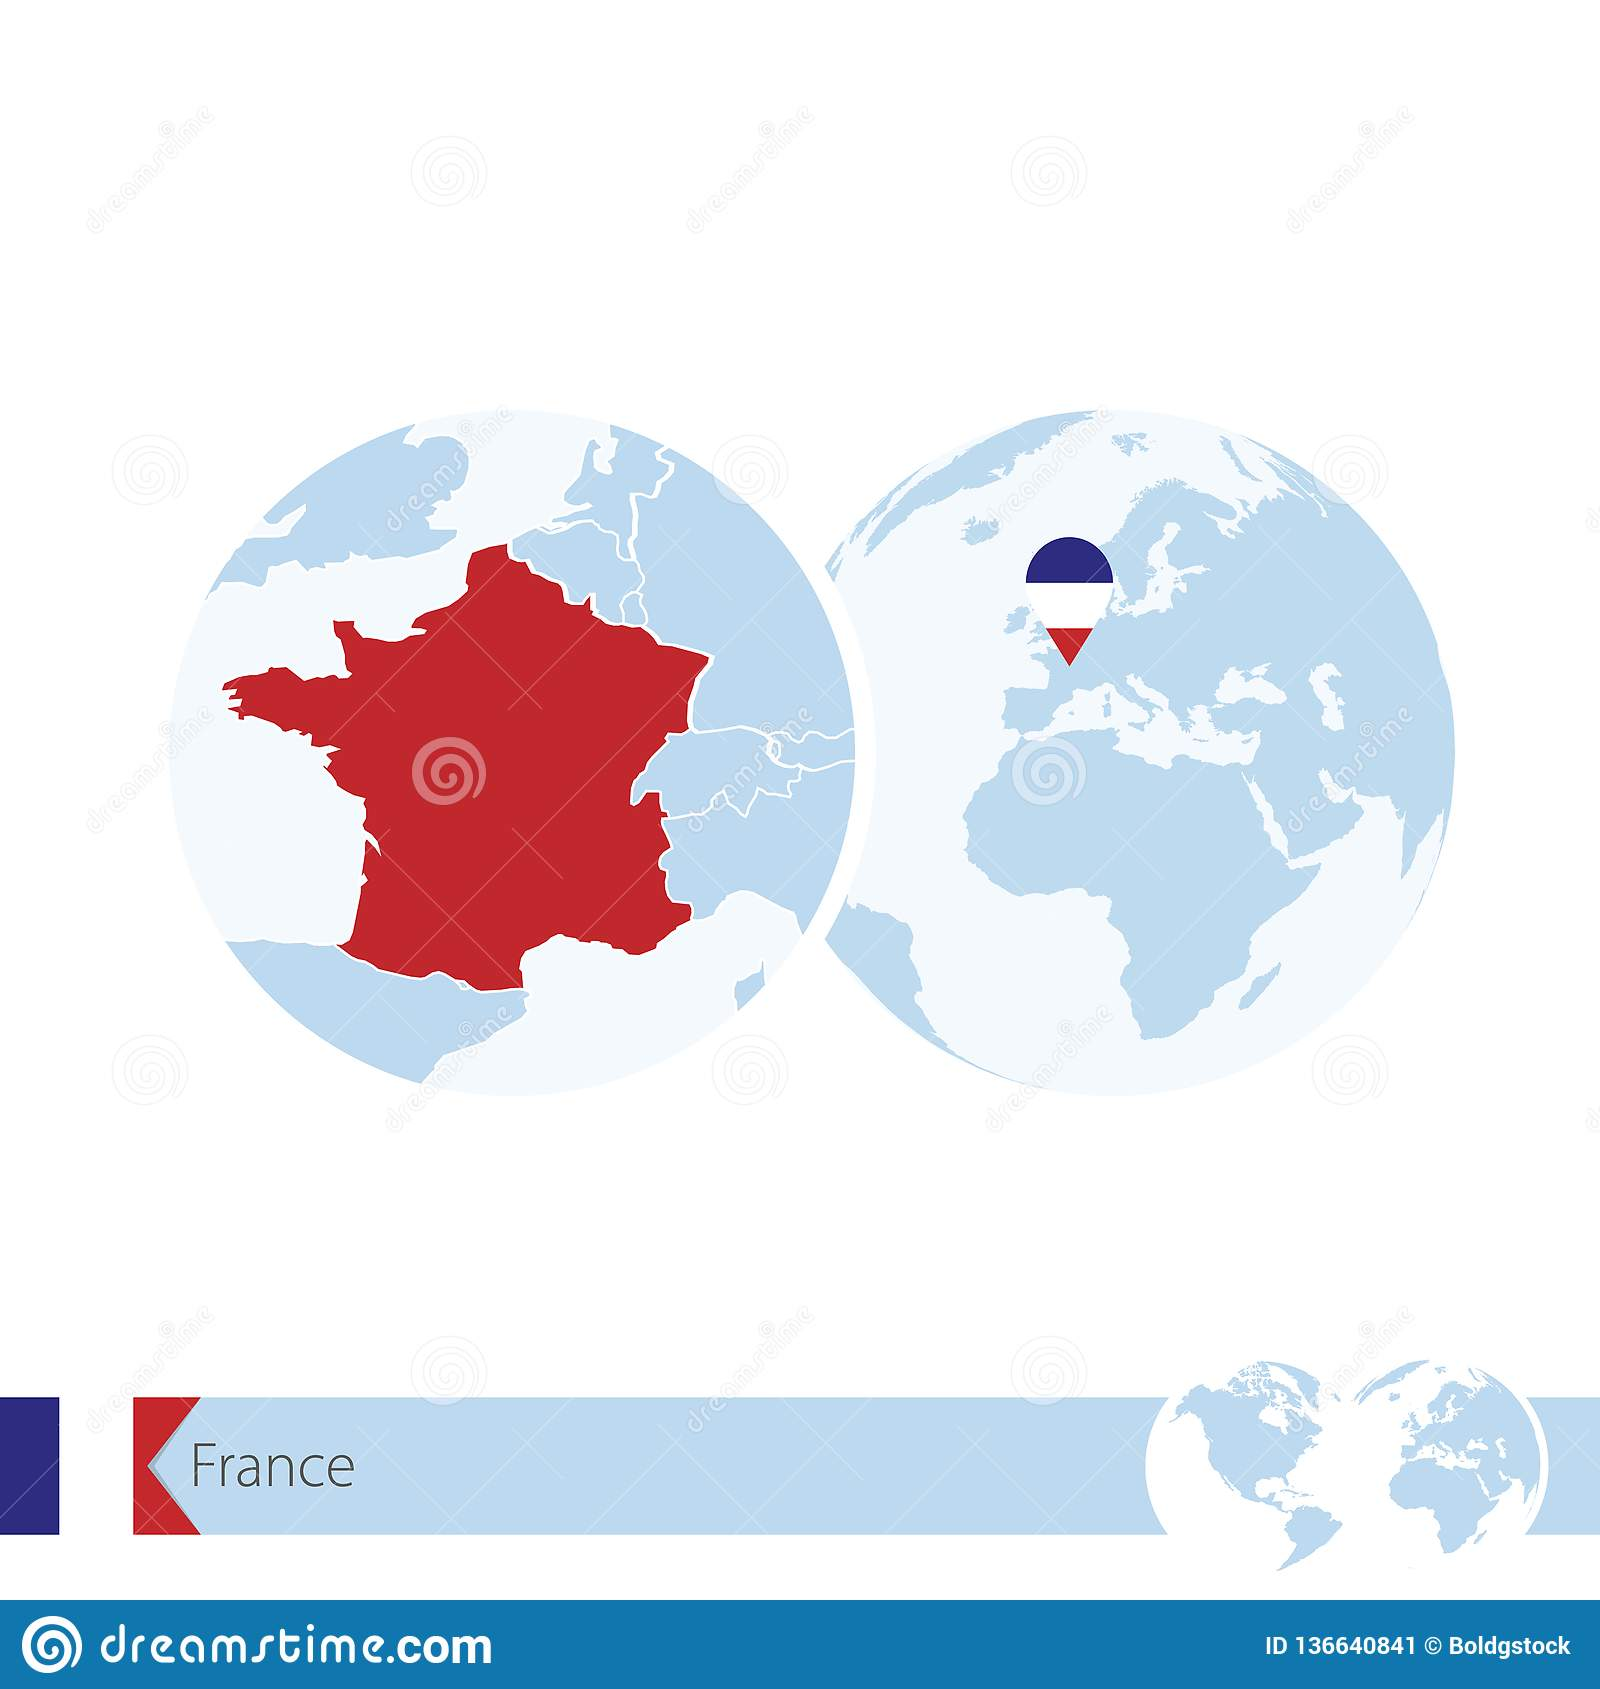 France On World Globe With Flag And Regional Map Of France Stock